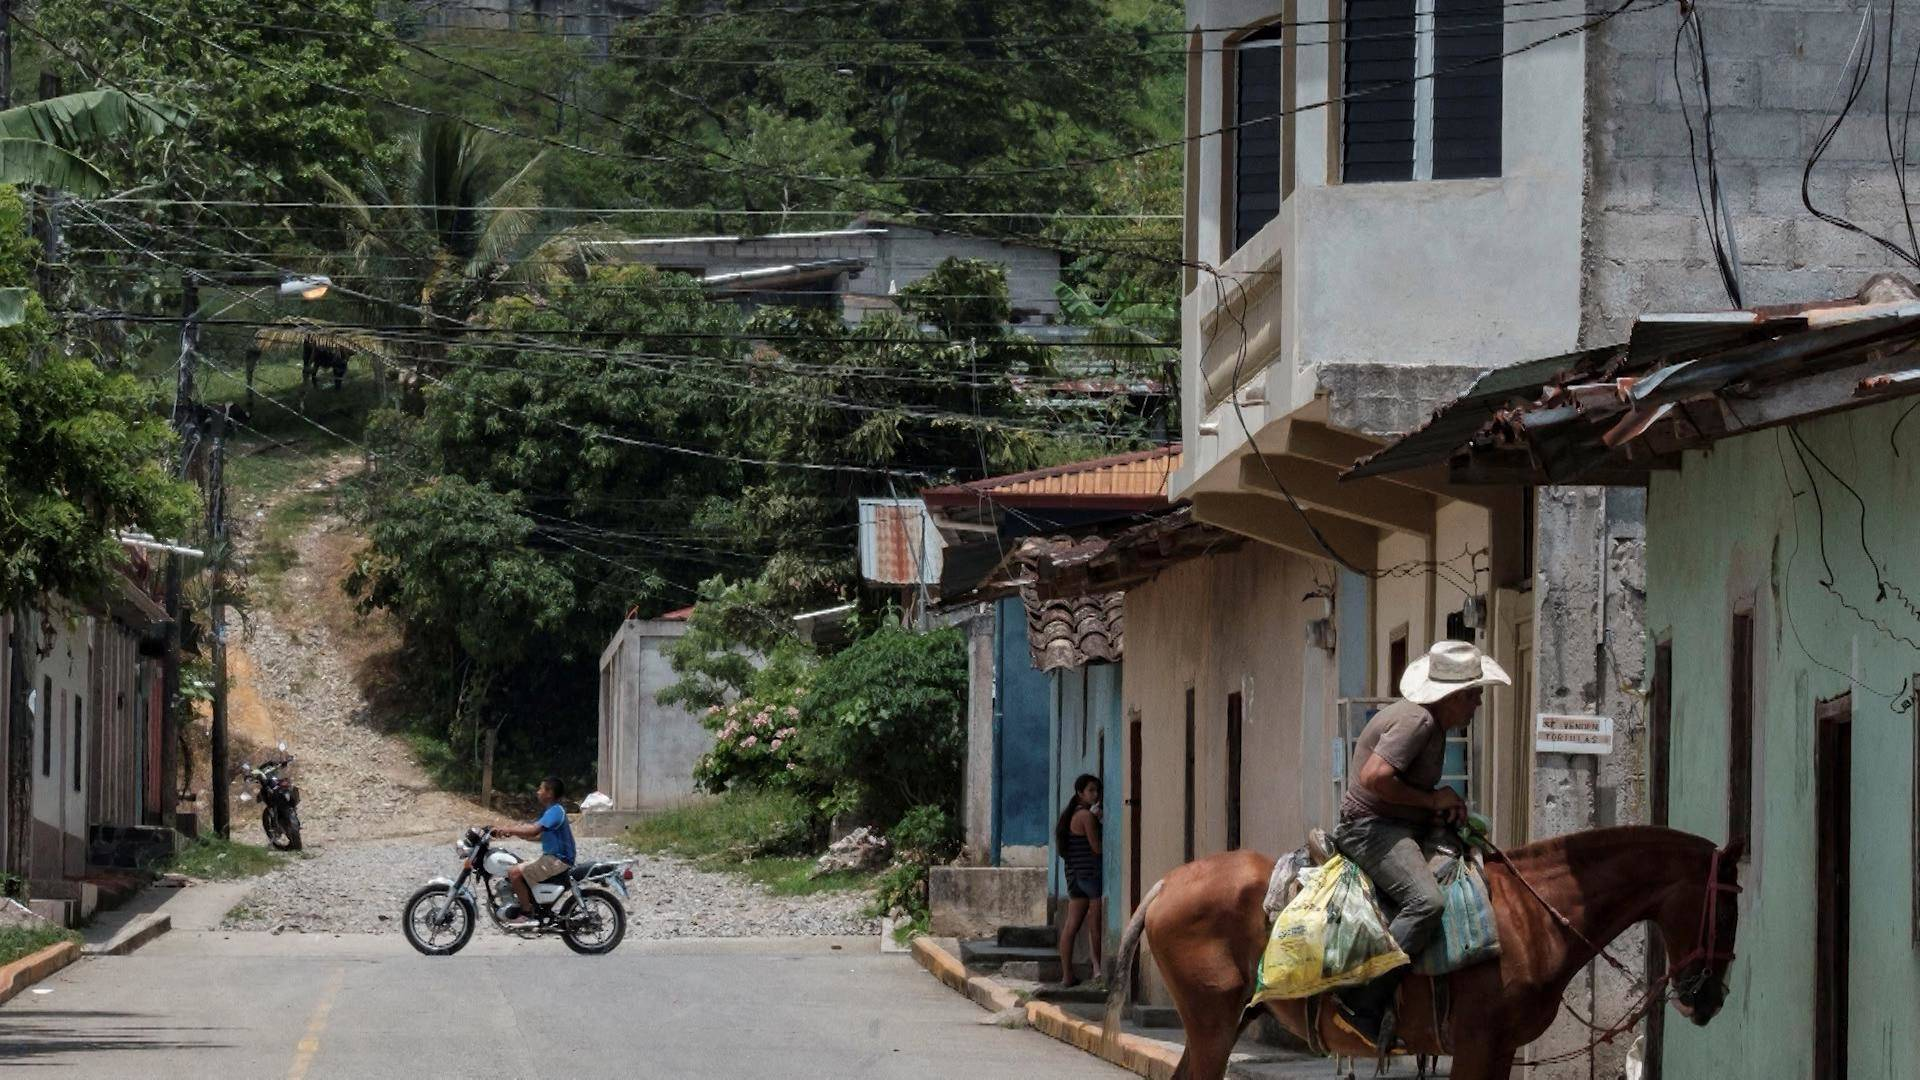 """Read more about the article """"Life Has Become Unlivable in Honduras"""": How Corruption & Drug Trade Fueled Migration to U.S."""